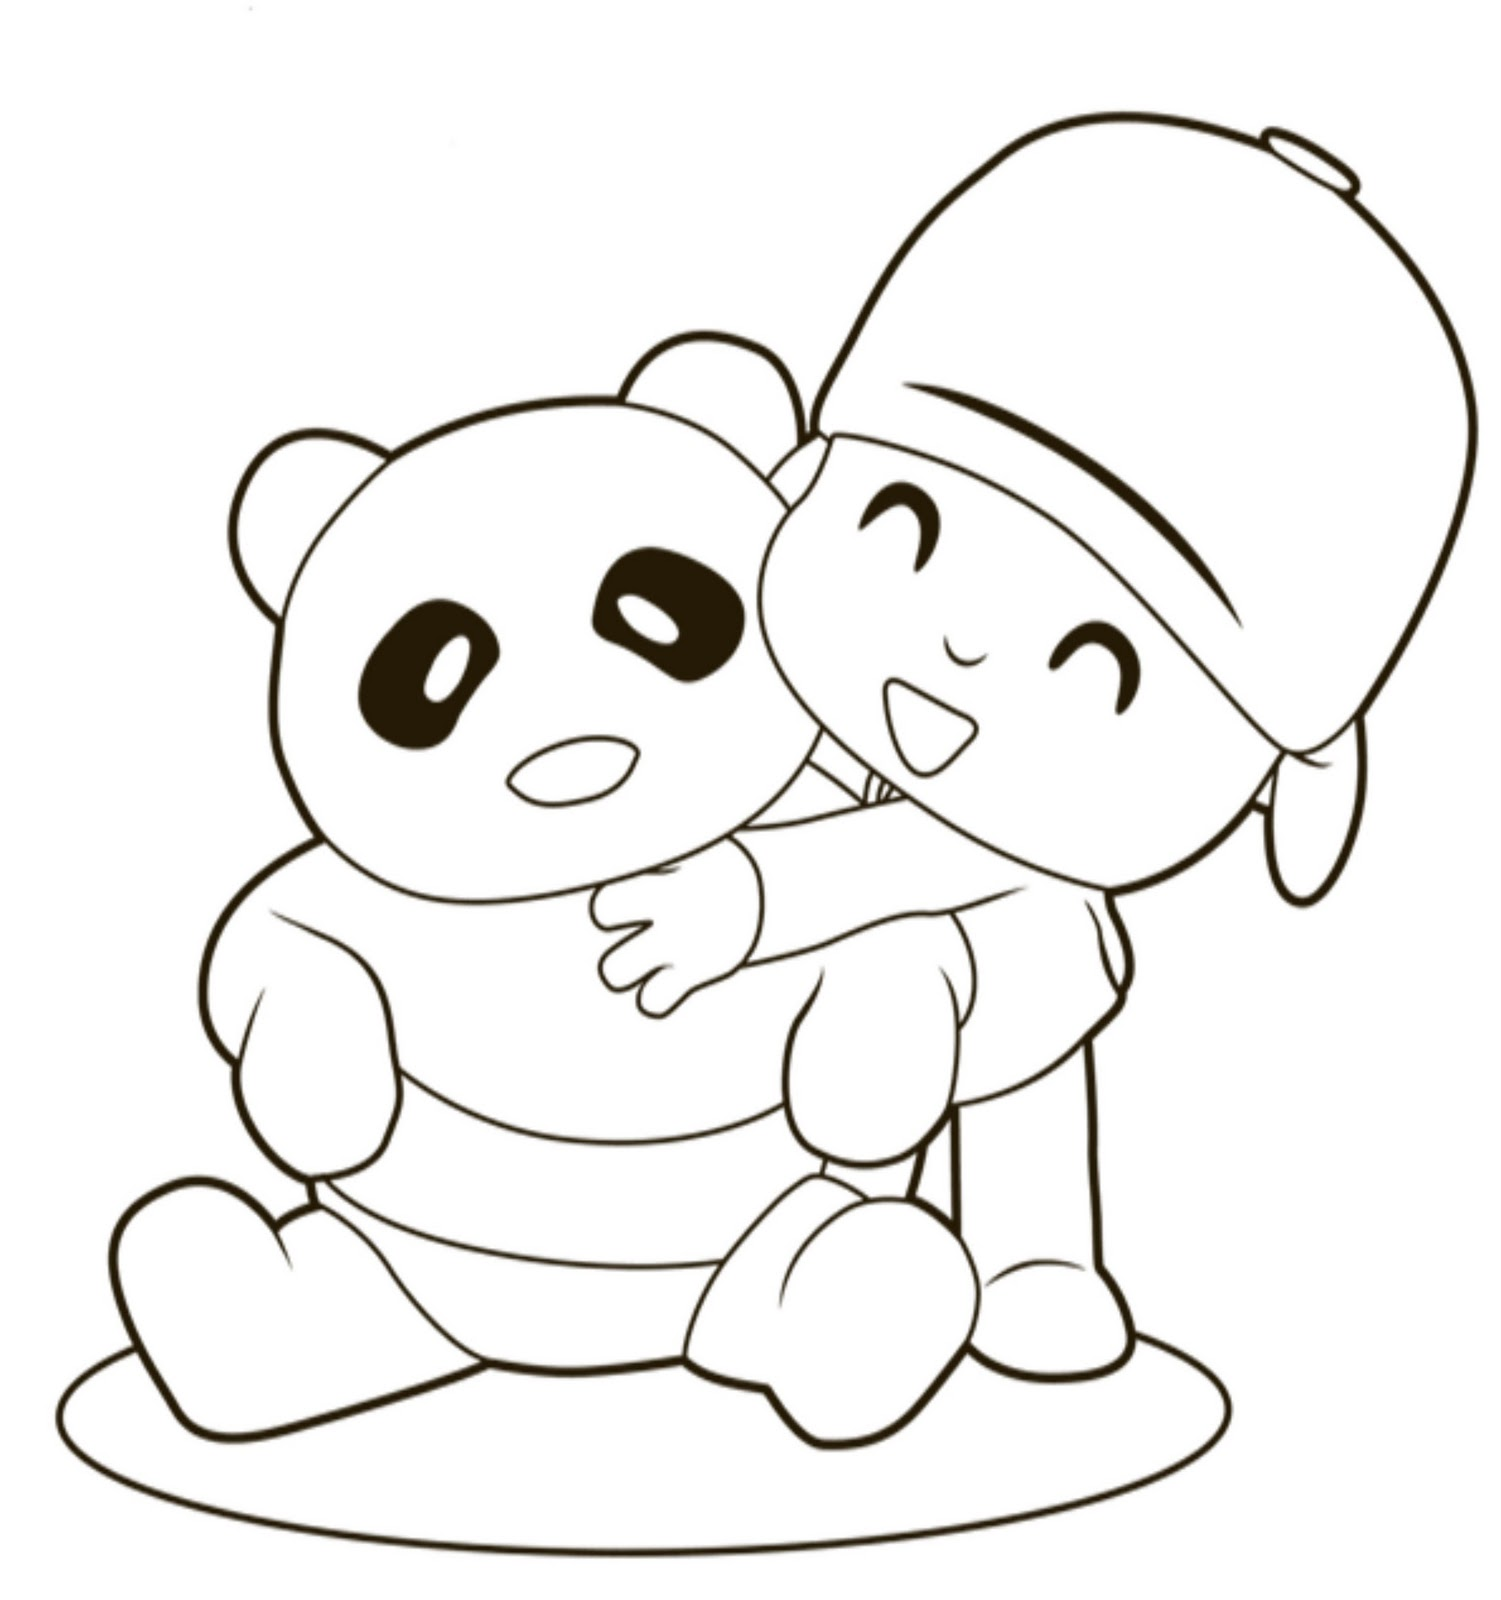 pocoyo coloring pages printable - Pocoyo Friends Coloring Pages